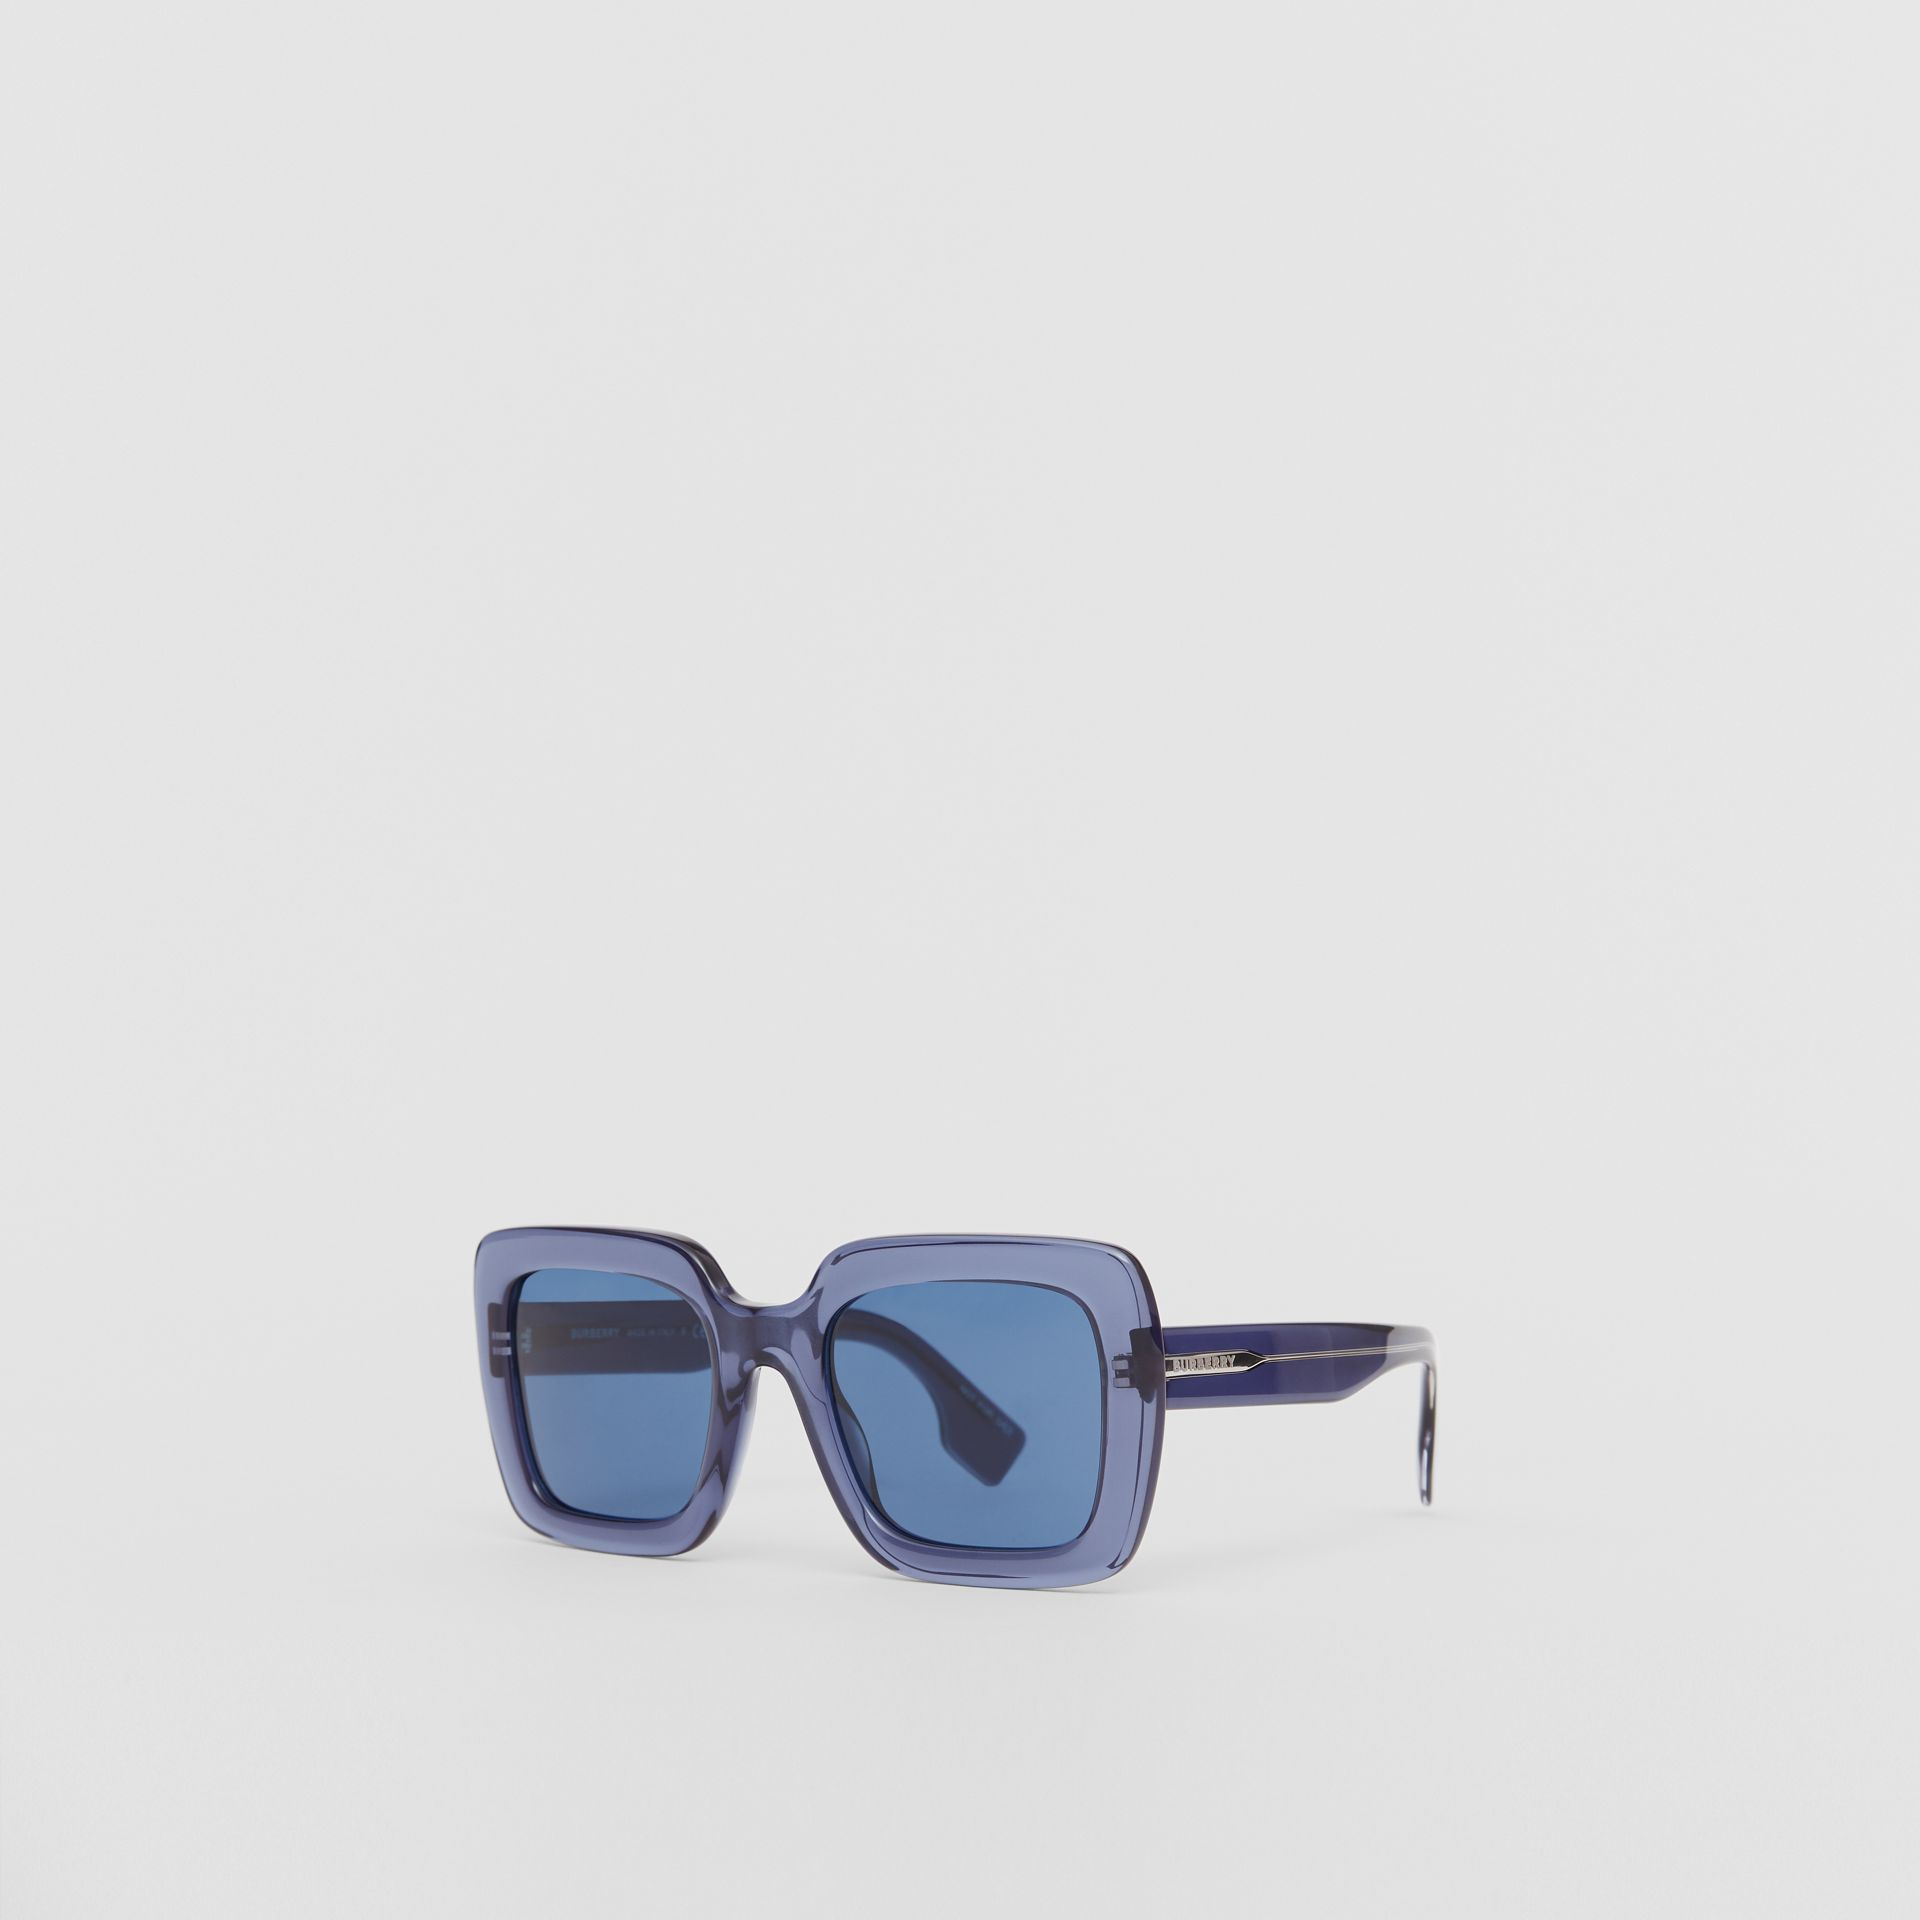 Oversized Square Frame Sunglasses in Blue - Women | Burberry - gallery image 4